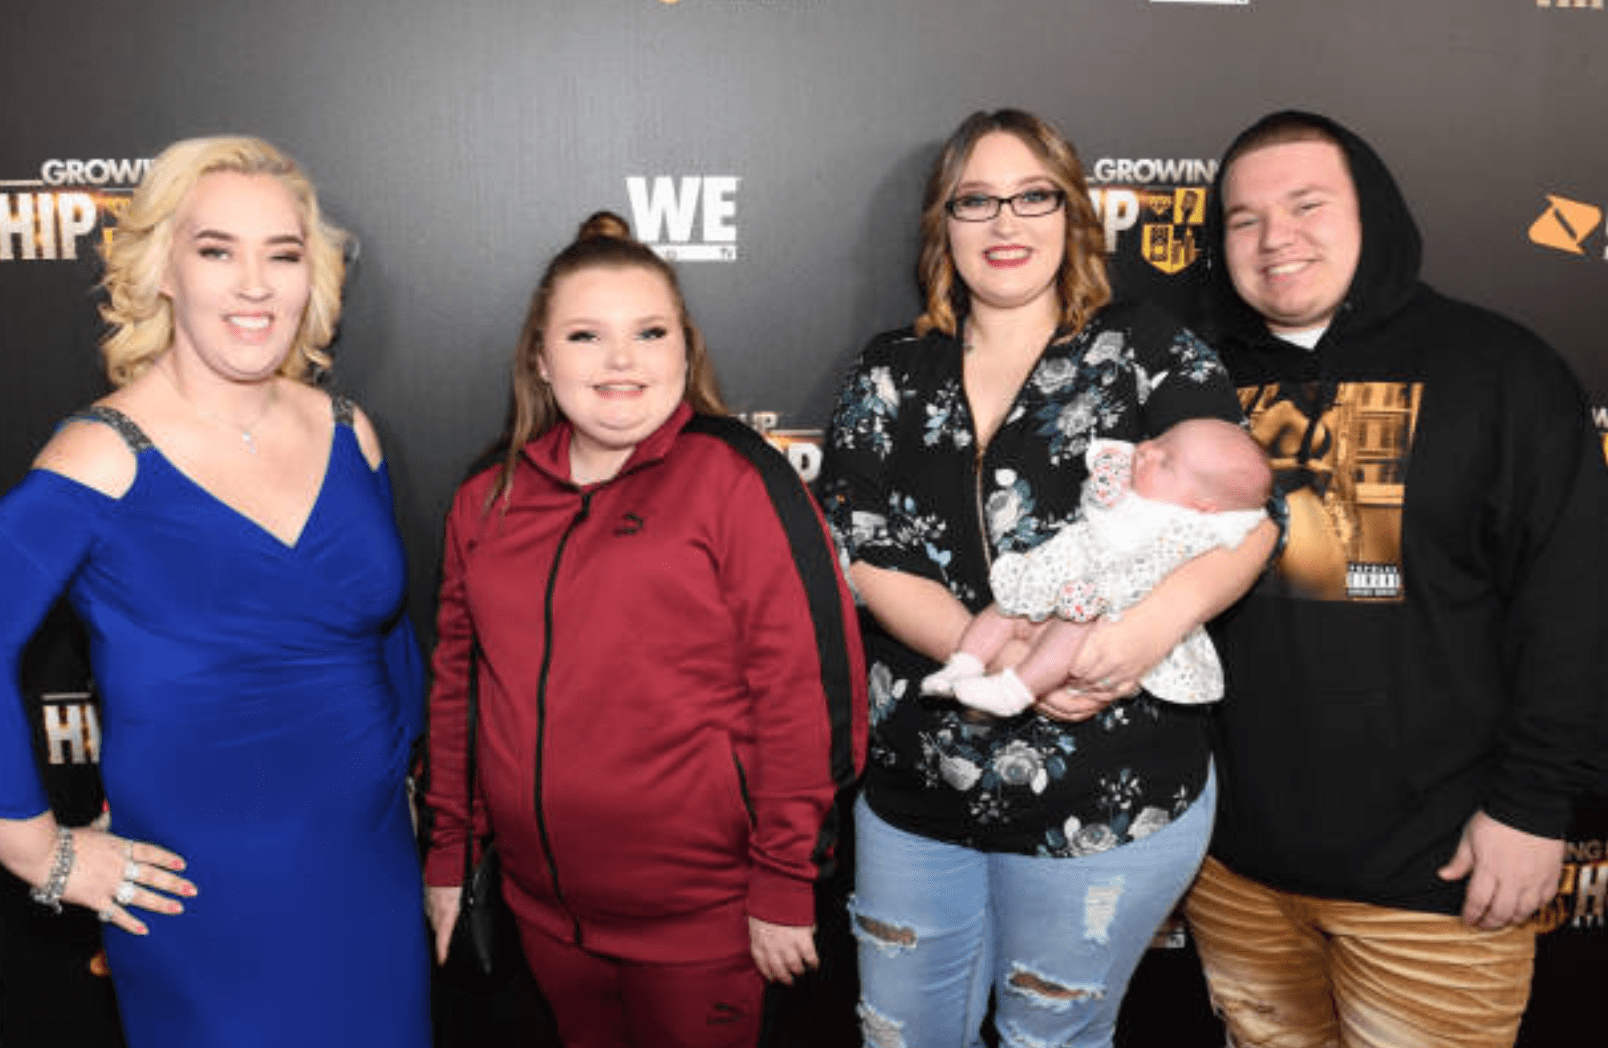 Mama June Shannon, Alana Thompson, Lauryn Shannon and Joshua Efird attend the premiere for 'Growing Up Hip Hop,' Atlanta | Getty Images.